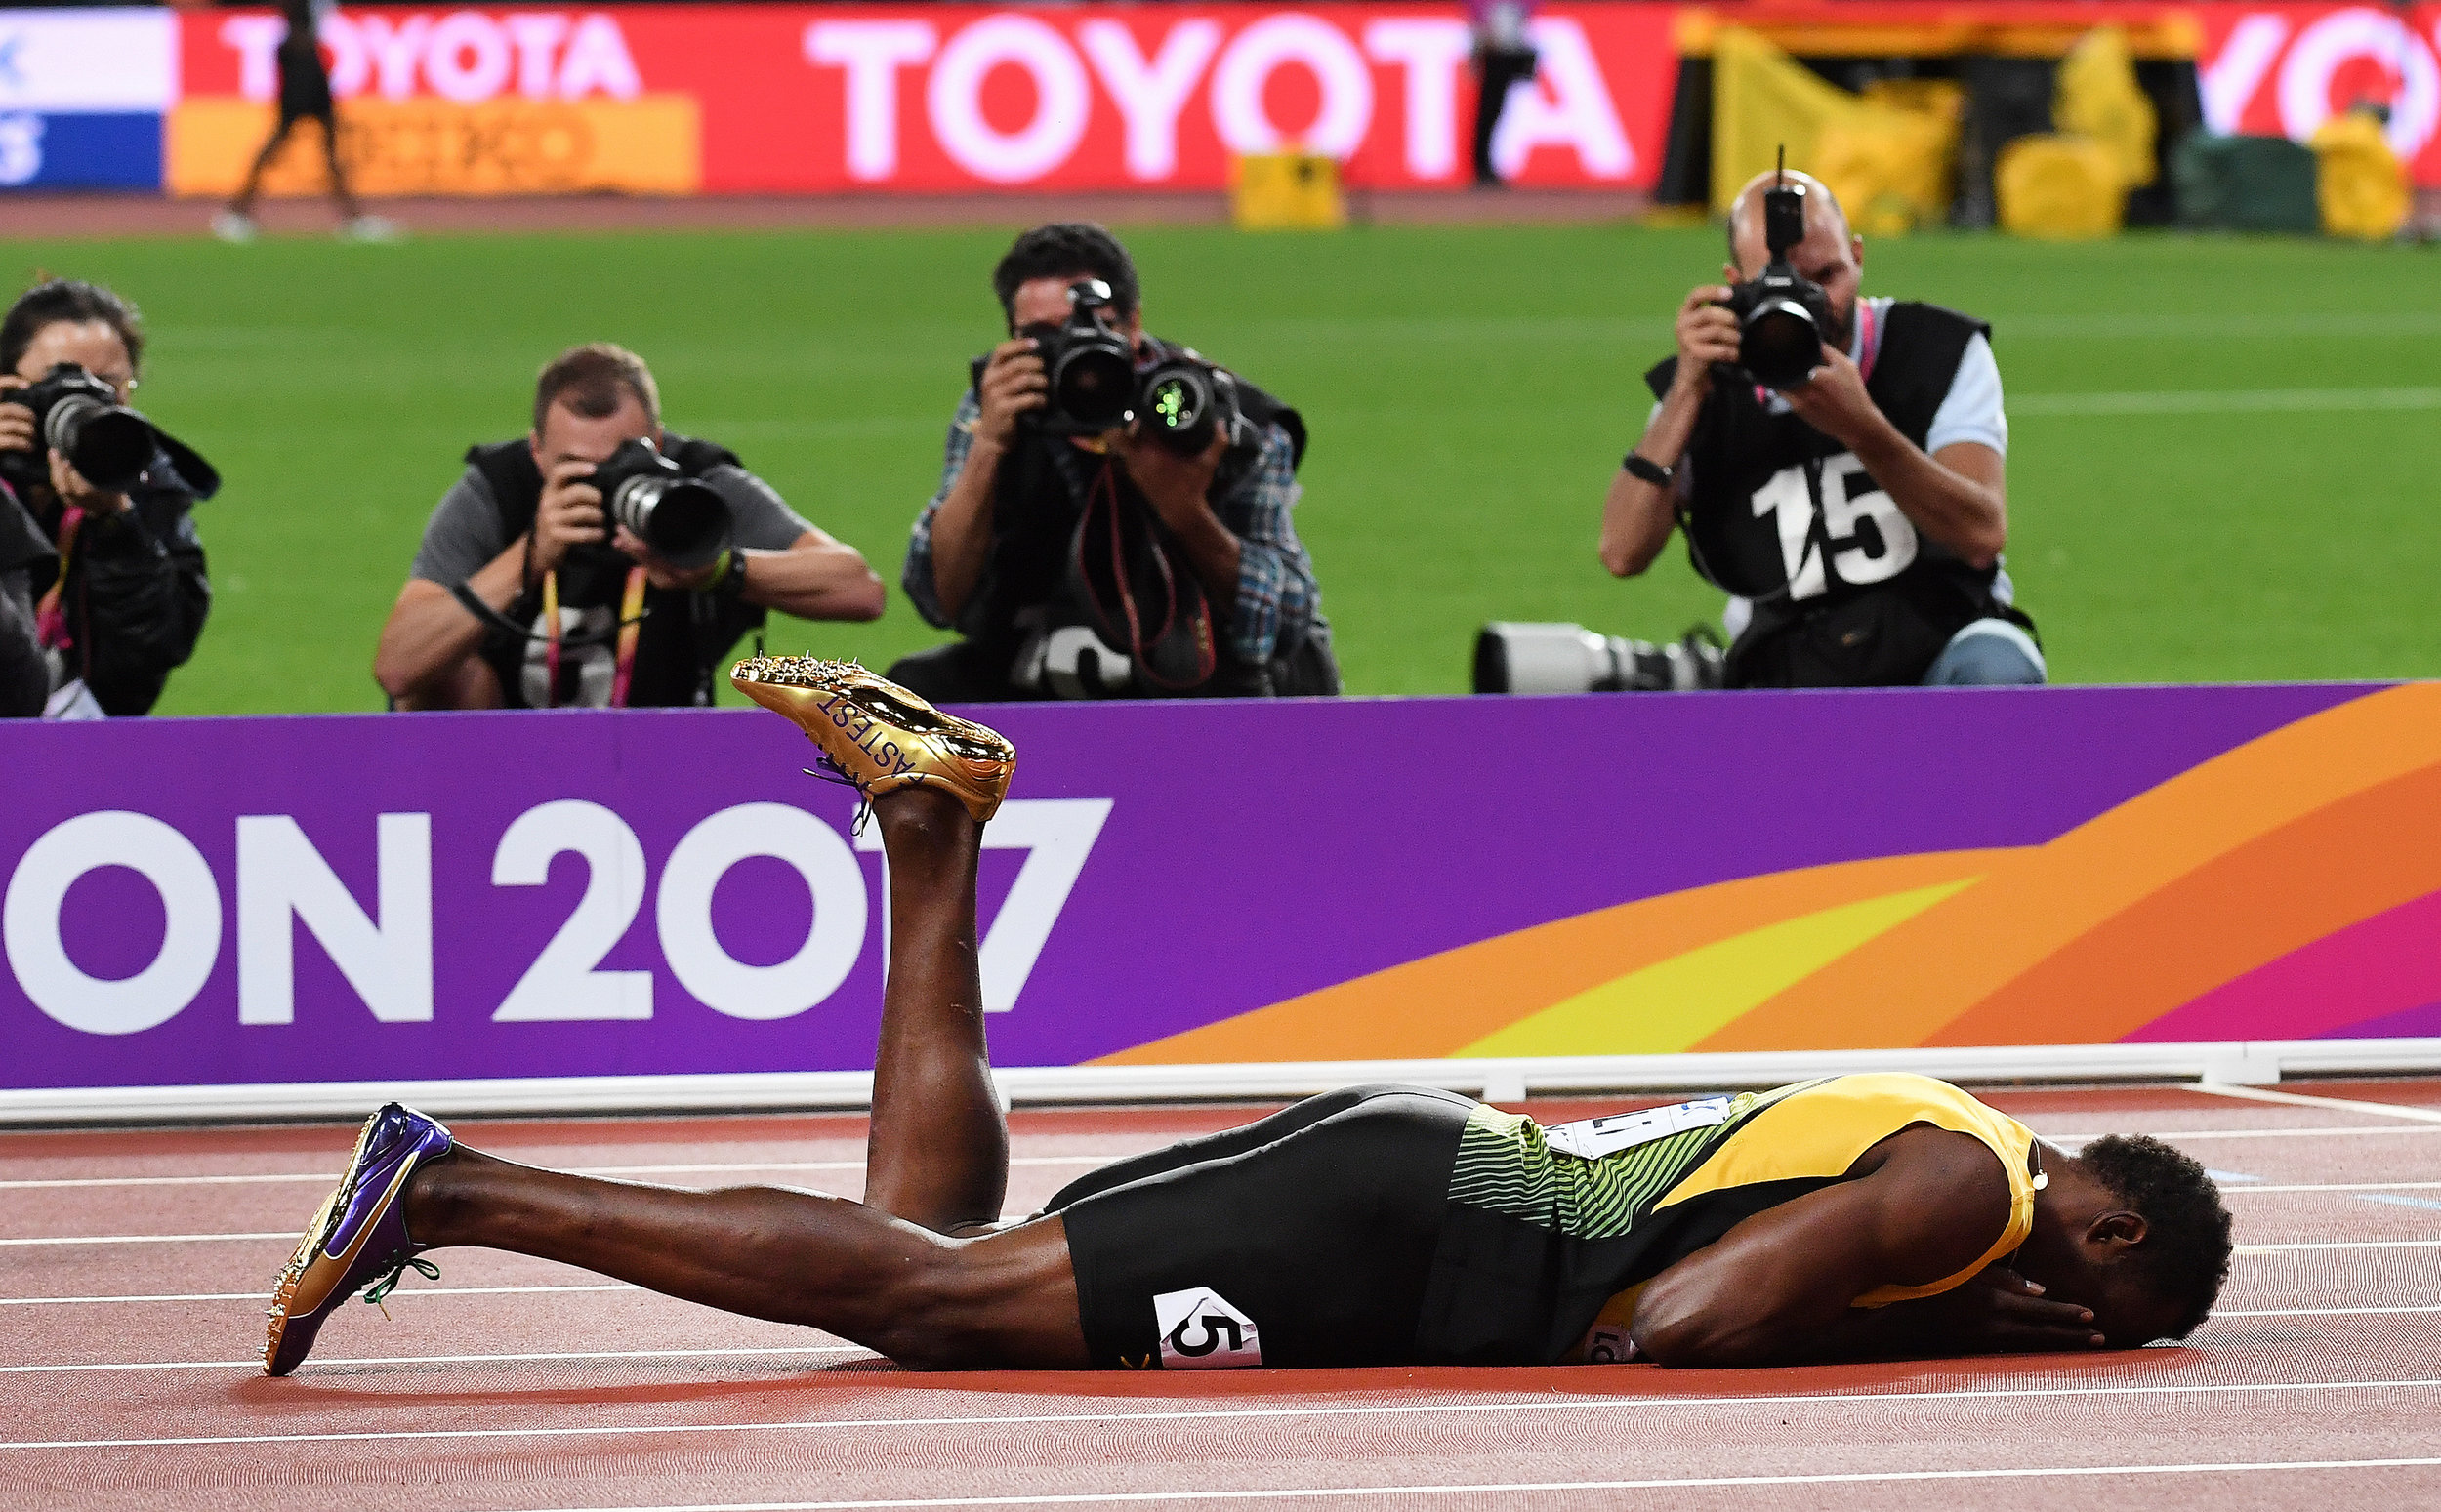 Usain Bolt face down on the track after sustaining an injury during the men's 4x100m Relay final at the 2017 IAAF World Championships at the London Stadium.Photo by Andy Rain  12 August 2017